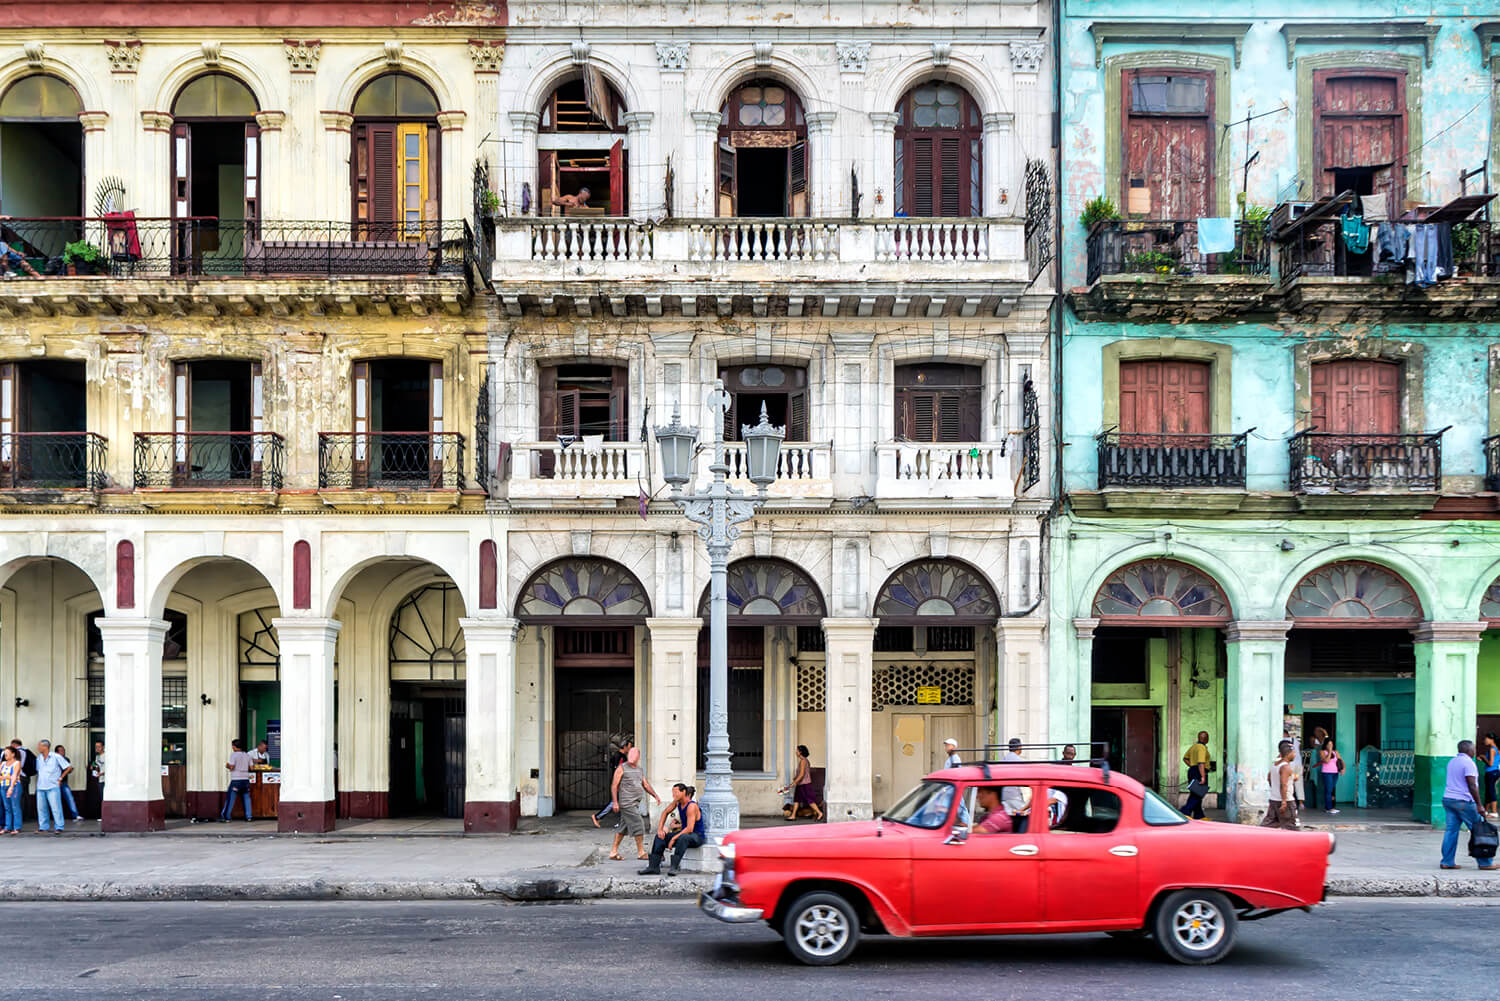 Where to stay and where to go in Havana, Cuba